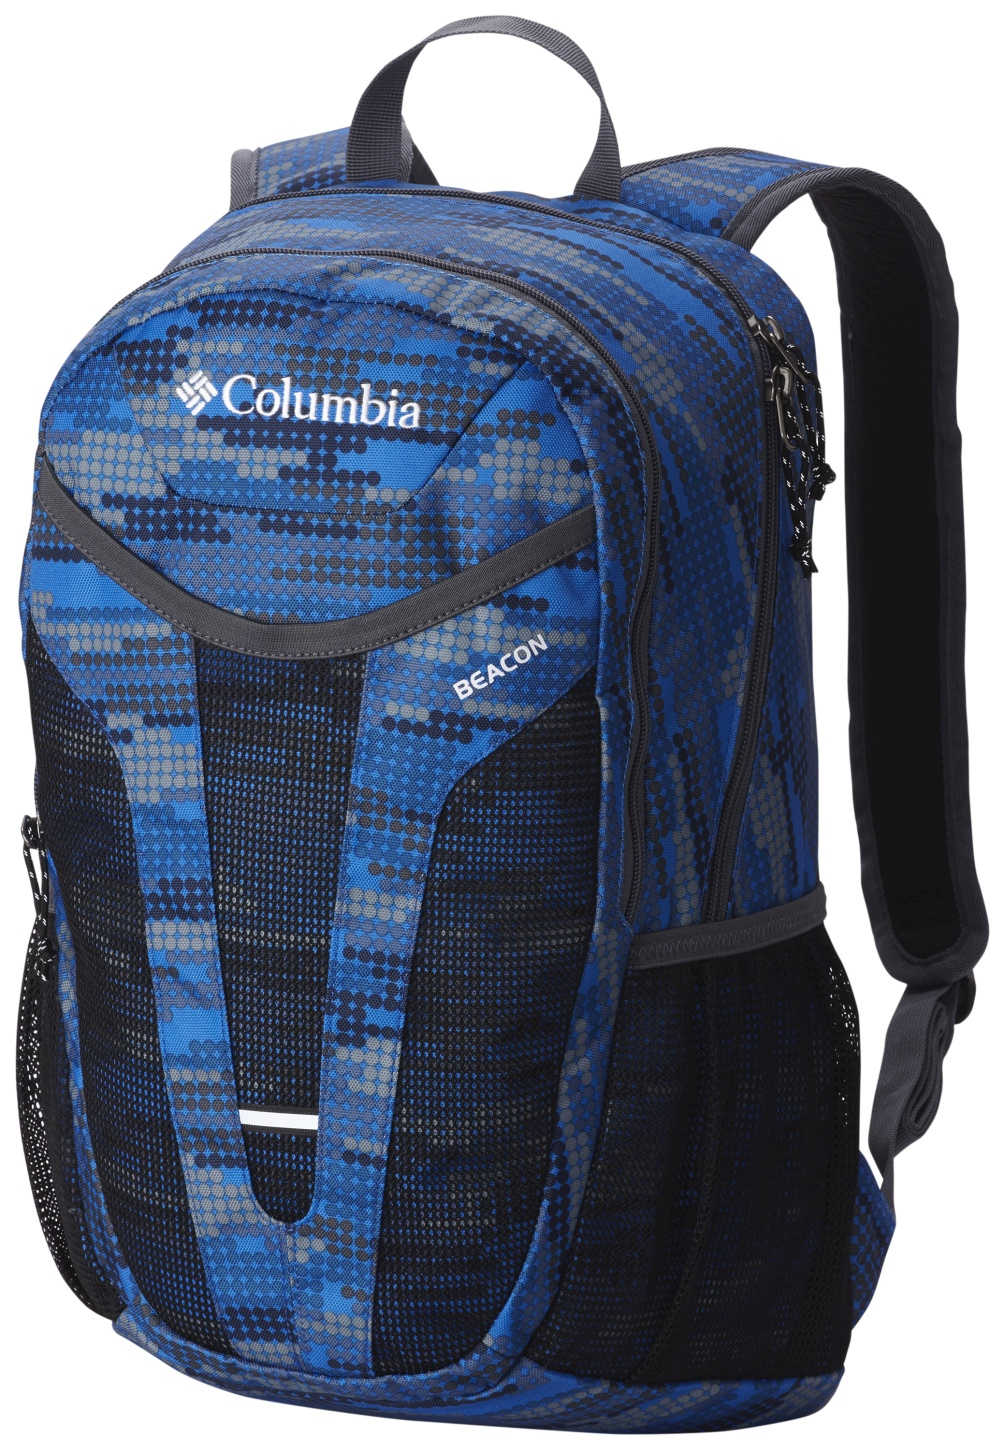 Columbia Beacon Daypack Bag Super Blue Digi Dot Print-30